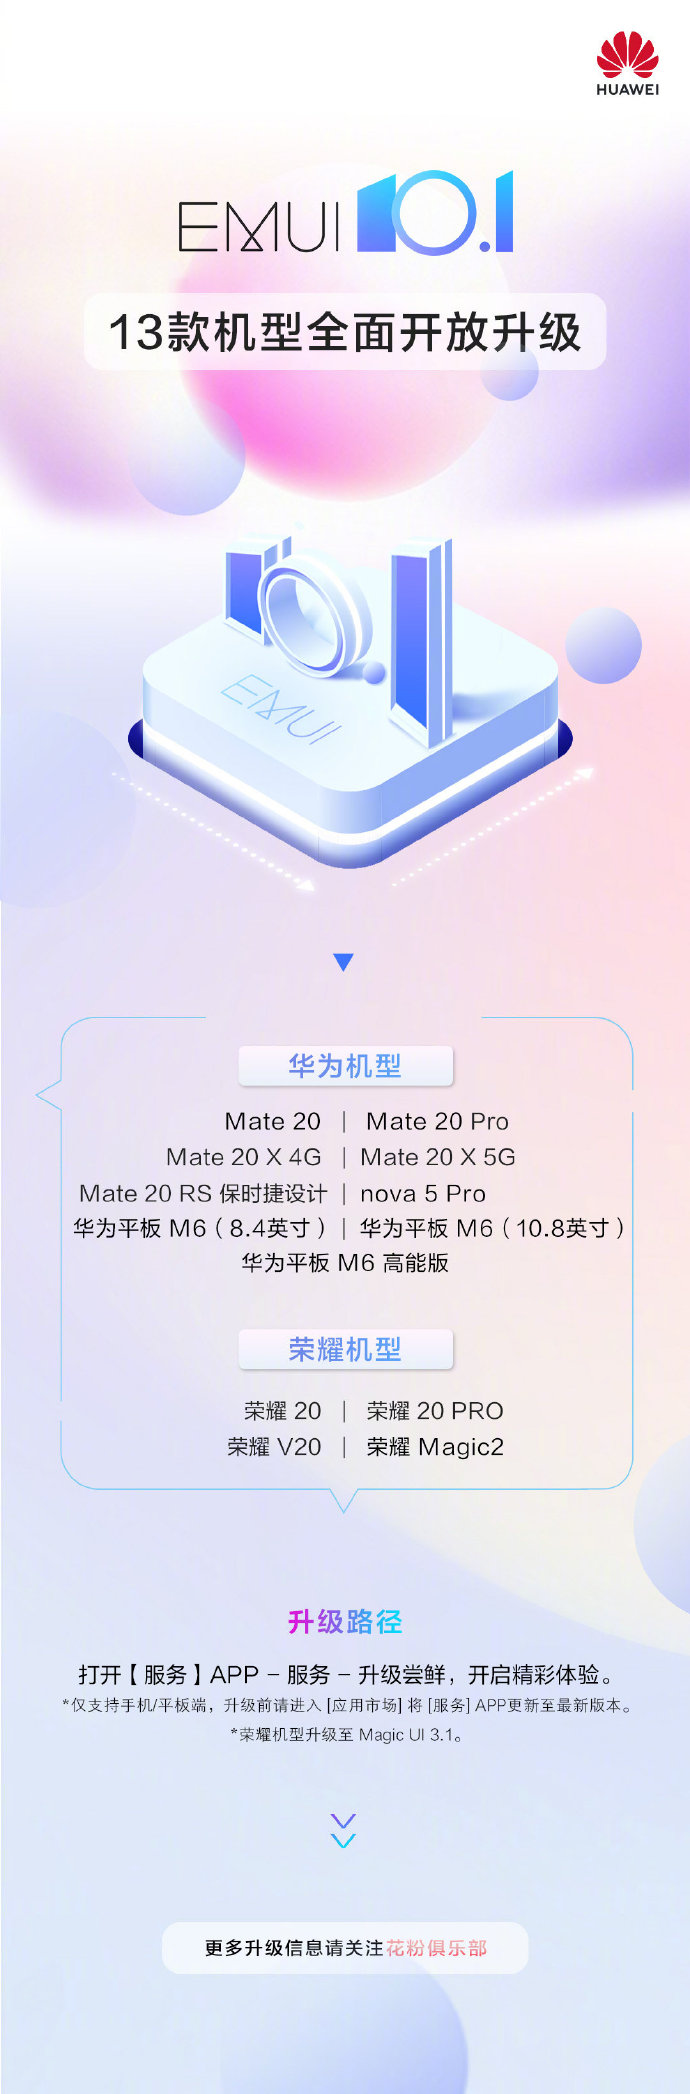 These 13 Huawei and Honor phones getting EMUI 10.1 update